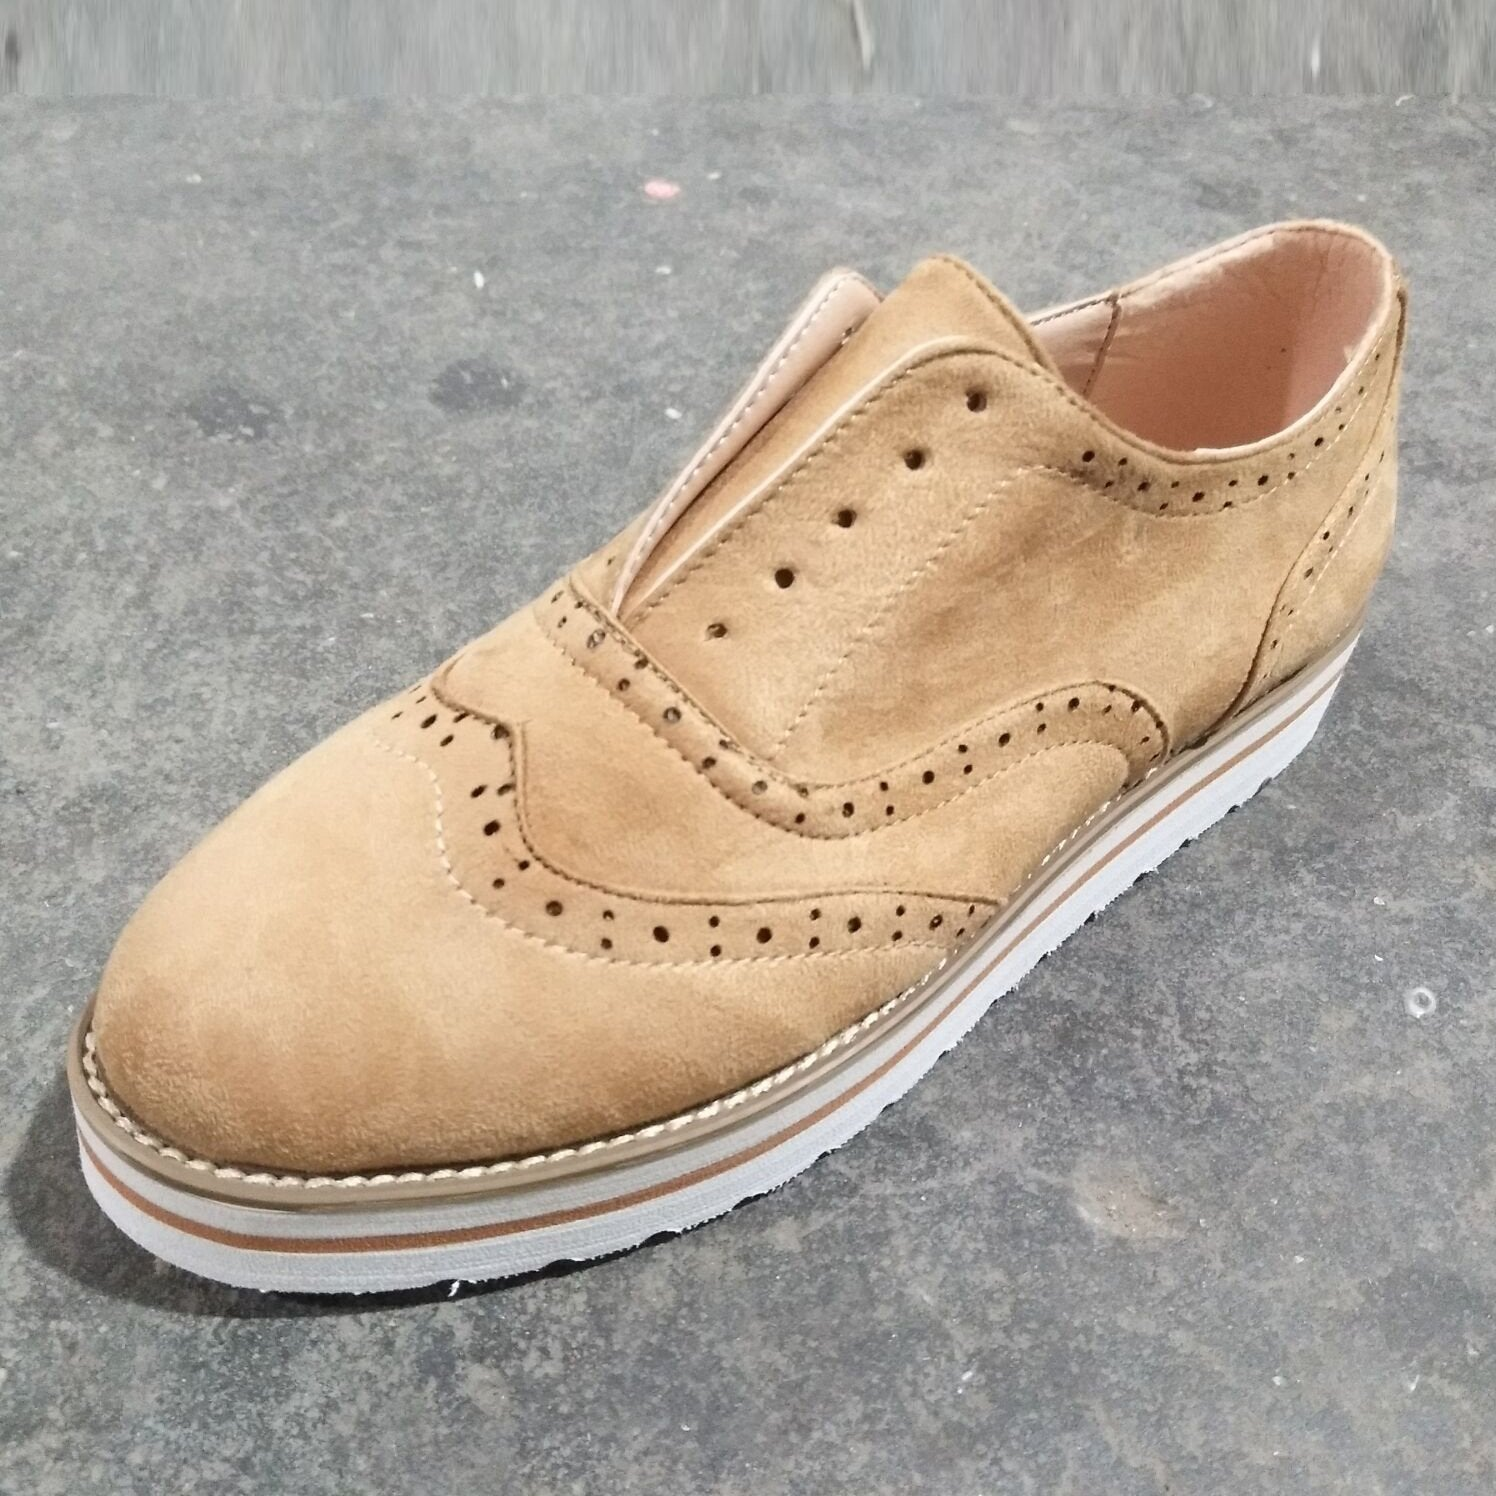 740a5eb91e ... Load image into Gallery viewer, Large Size Women Comfort Low Heel Lace-Up  Daily